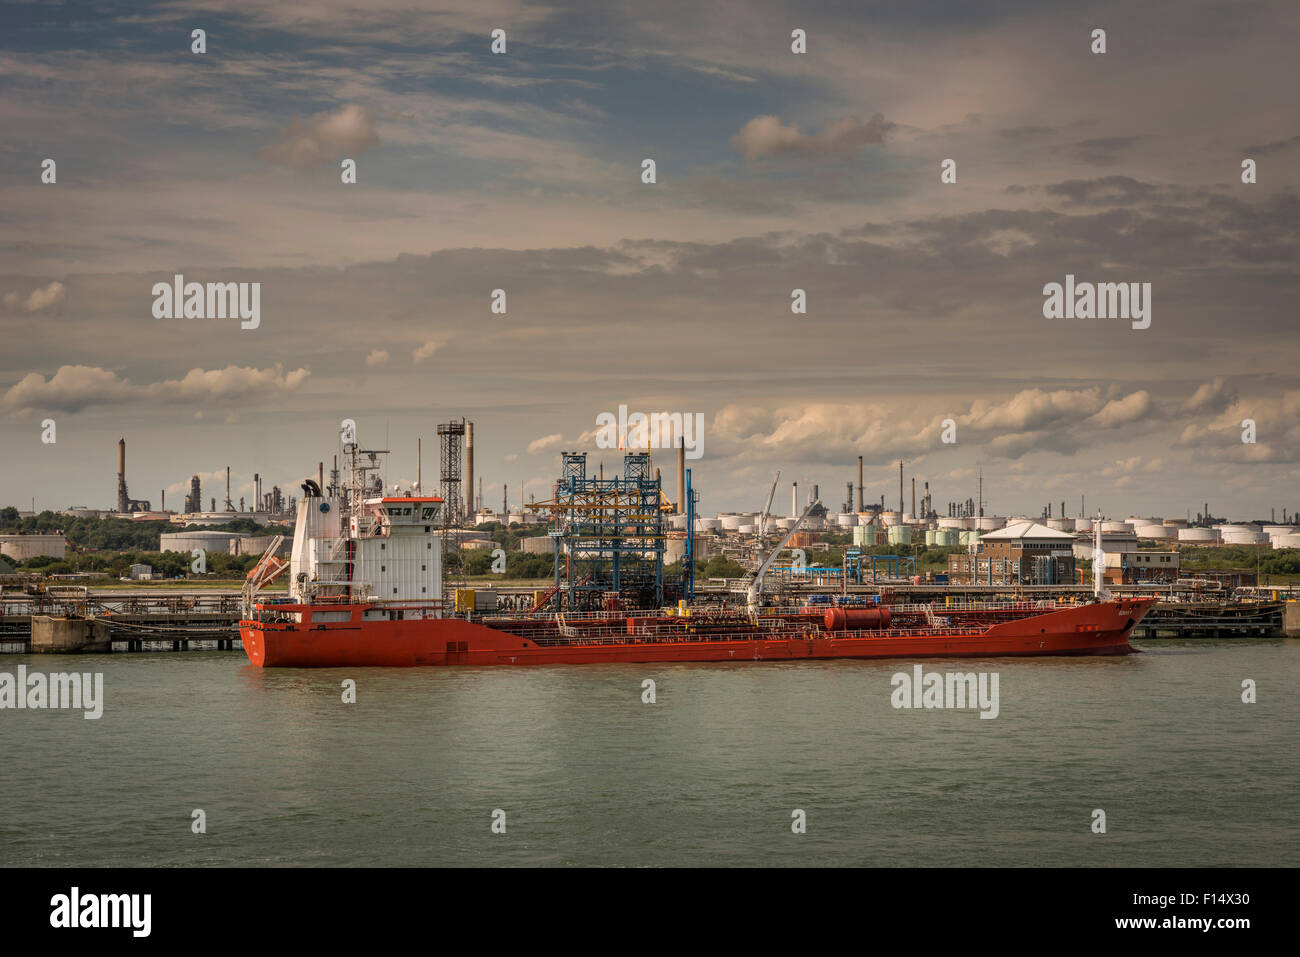 An oil tanker docked at Fawley Oil Refinery near Southampton, Hampshire, UK Stock Photo